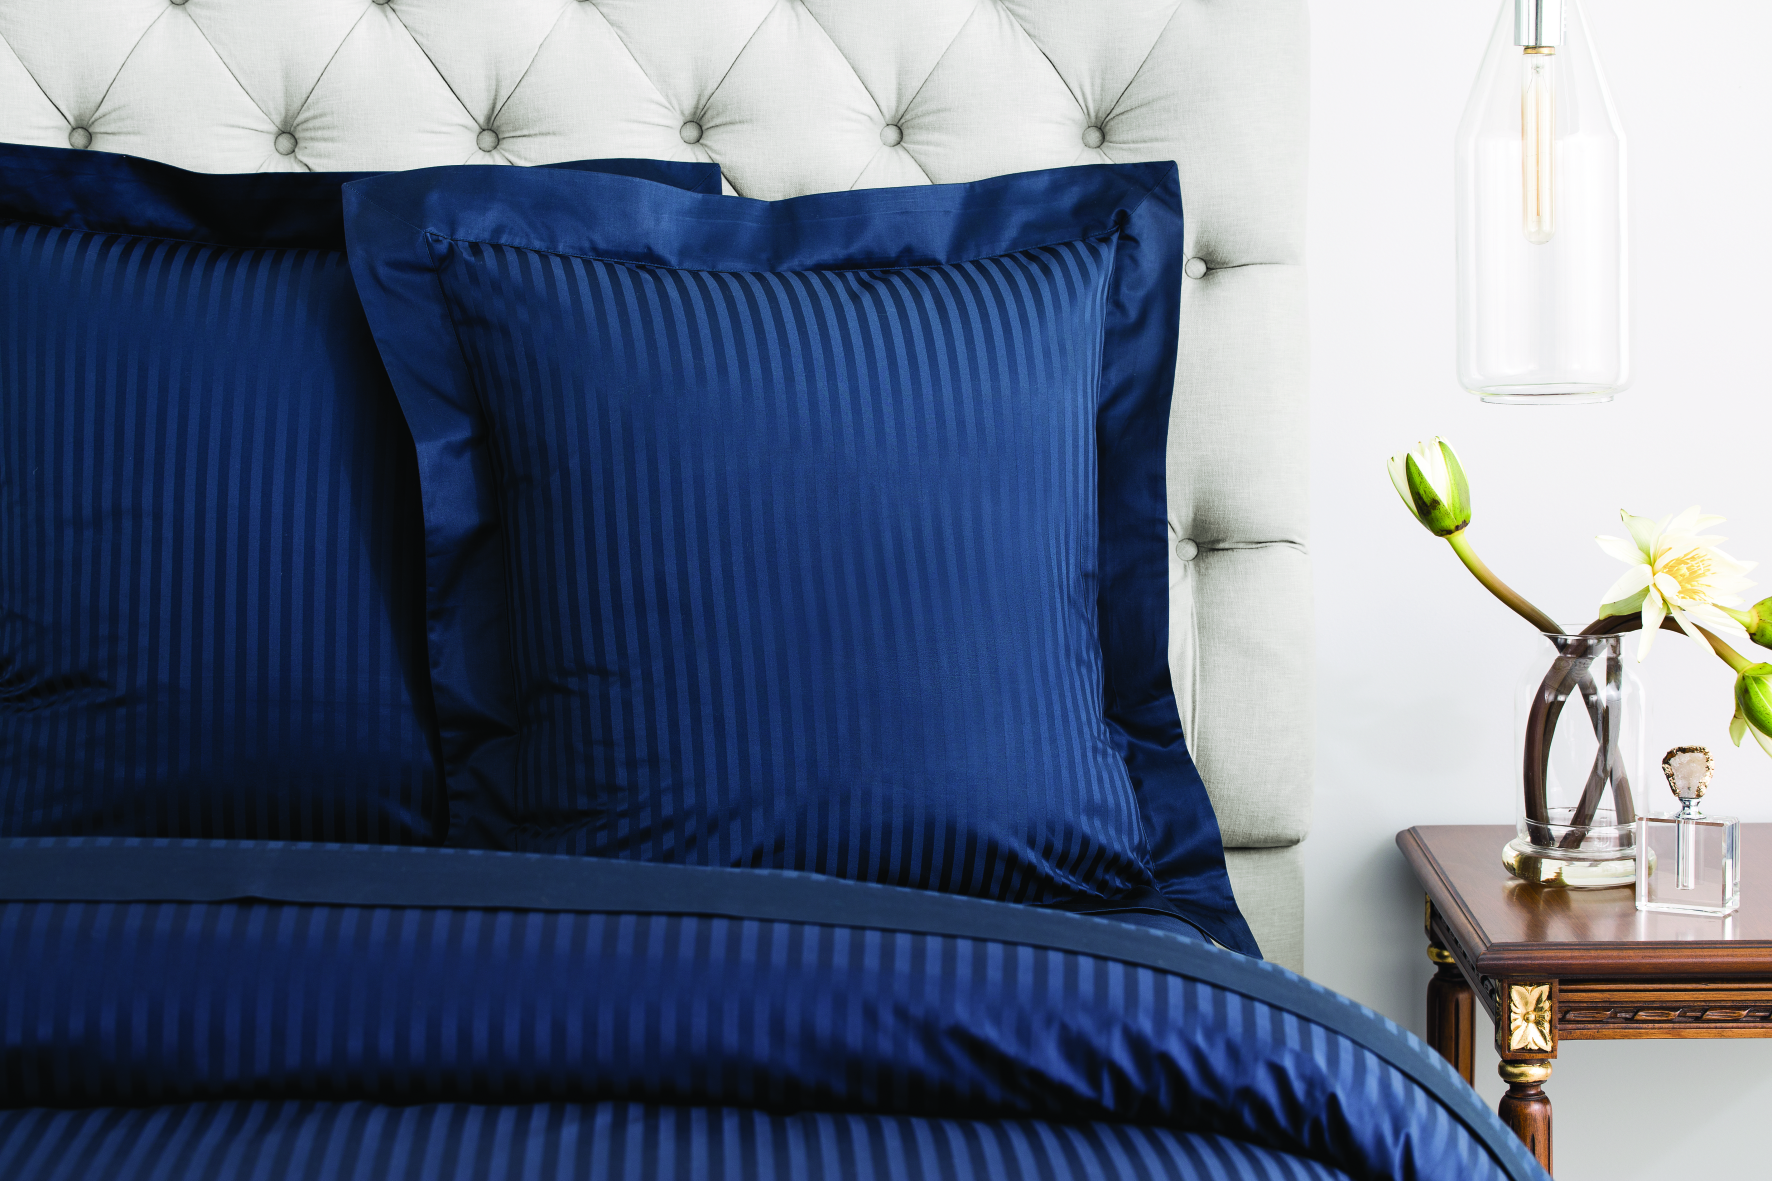 Millennia Tailored European Pillowcase - Single in Midnight